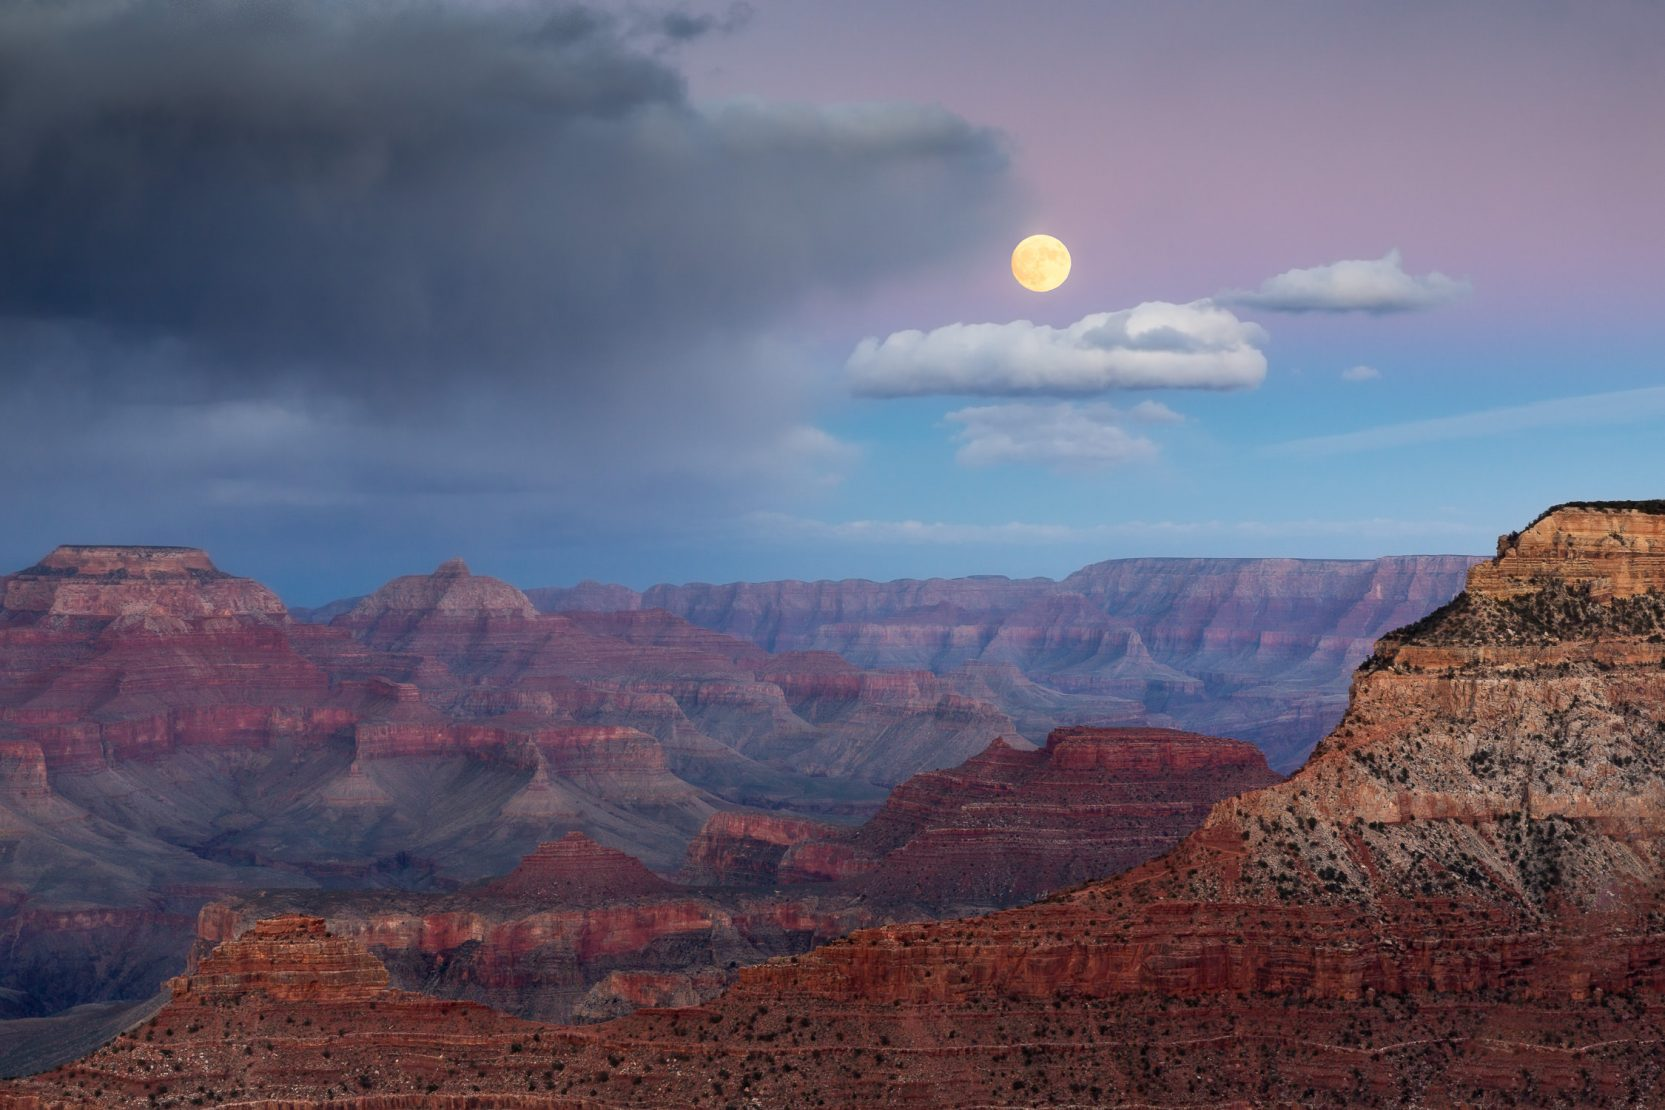 A full moon rises over the grand canyon.